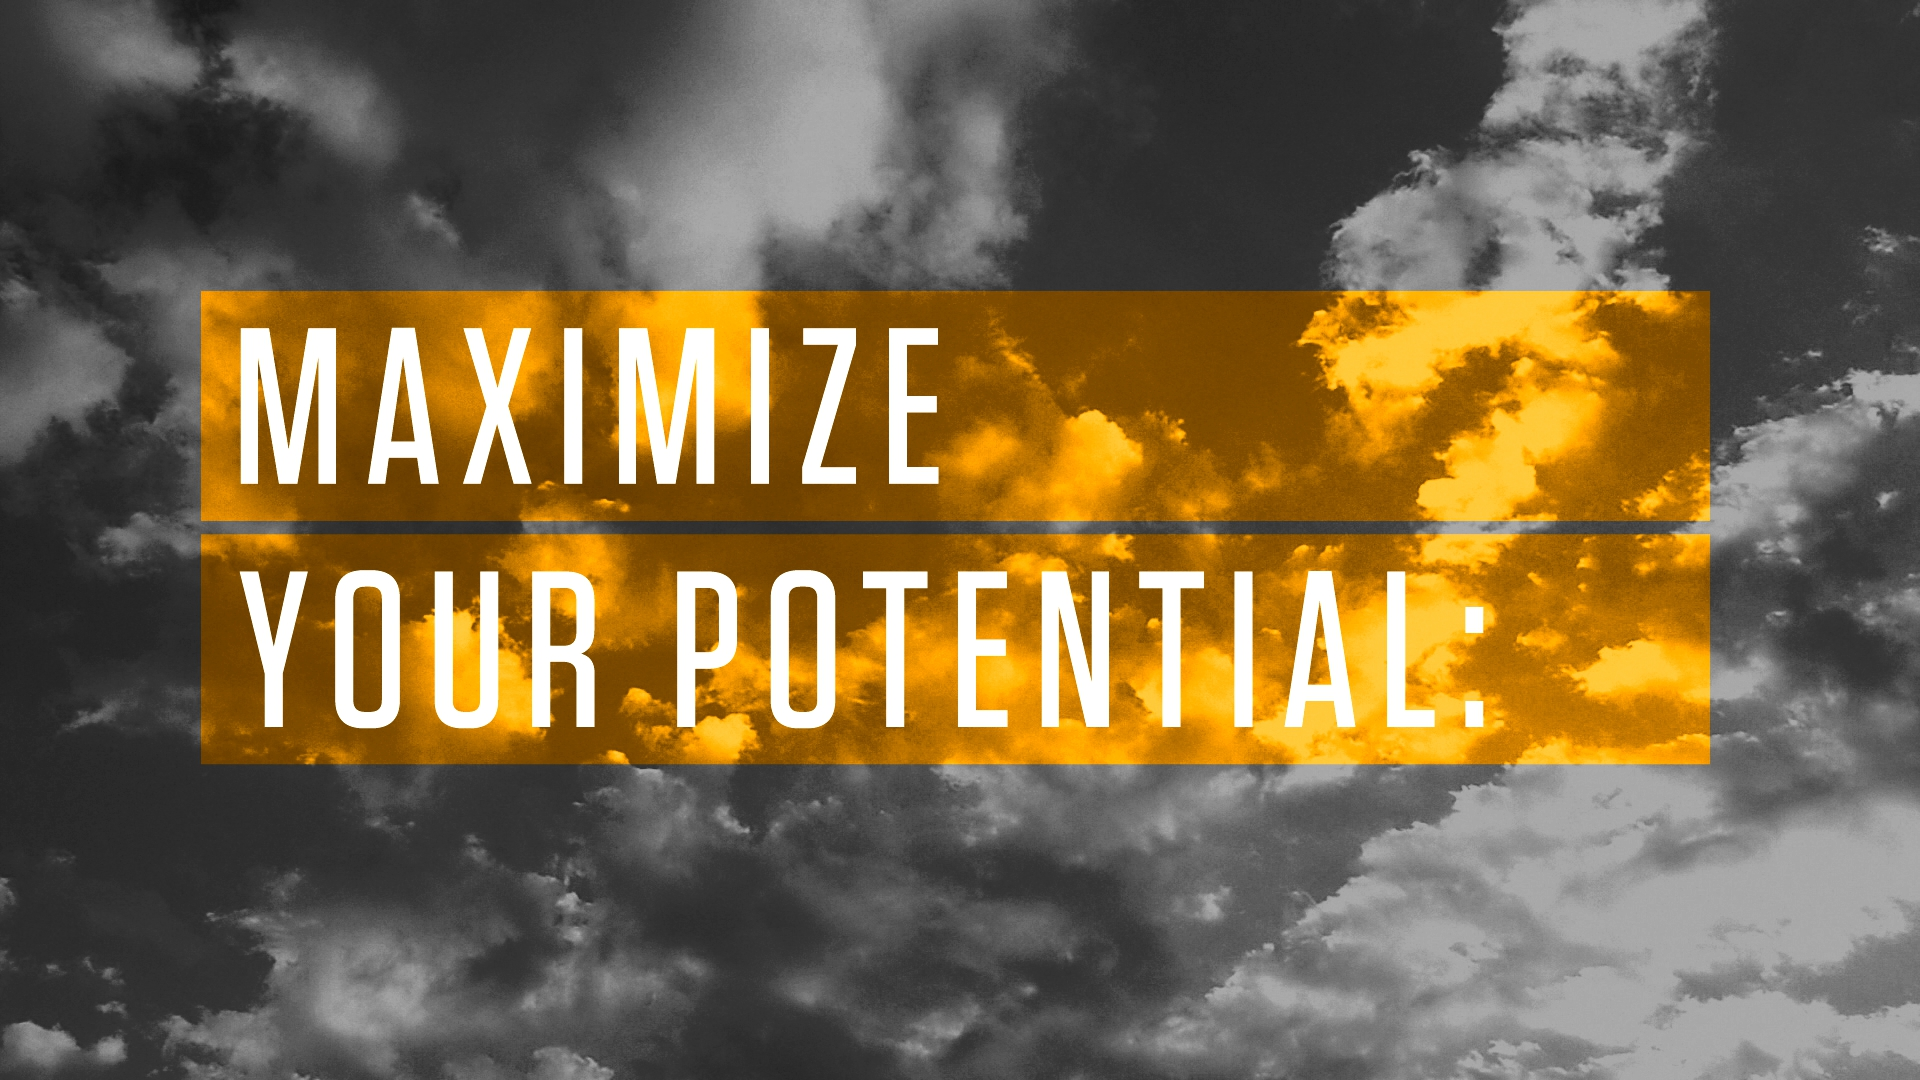 99U Maximize Your Potential